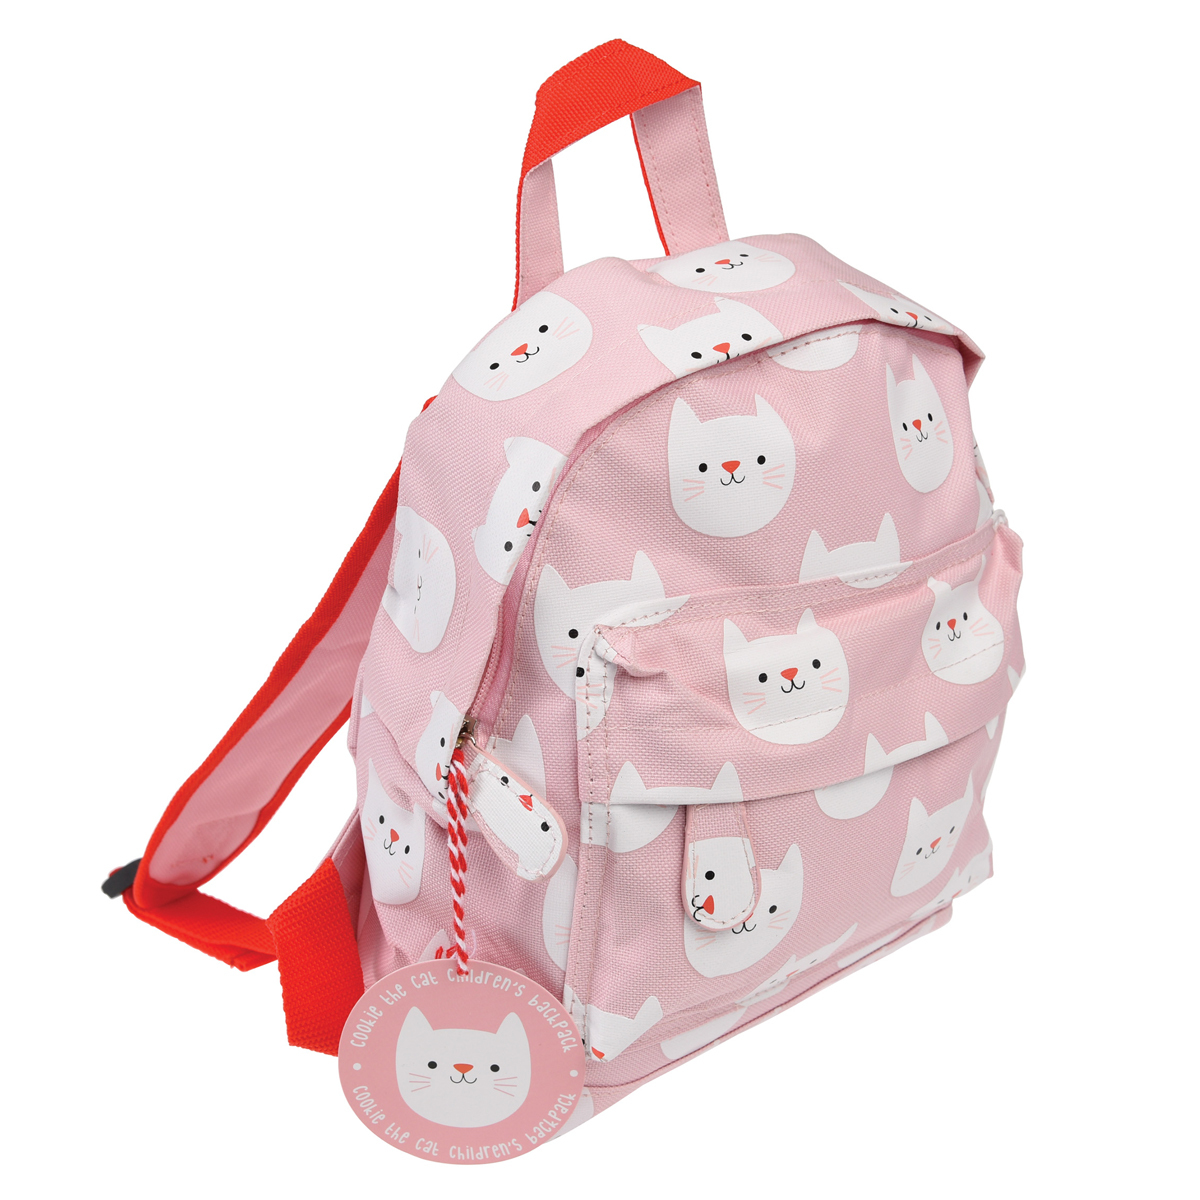 Bagagerie enfant Sac à Dos - Cookie le Chat Sac à Dos - Cookie le Chat